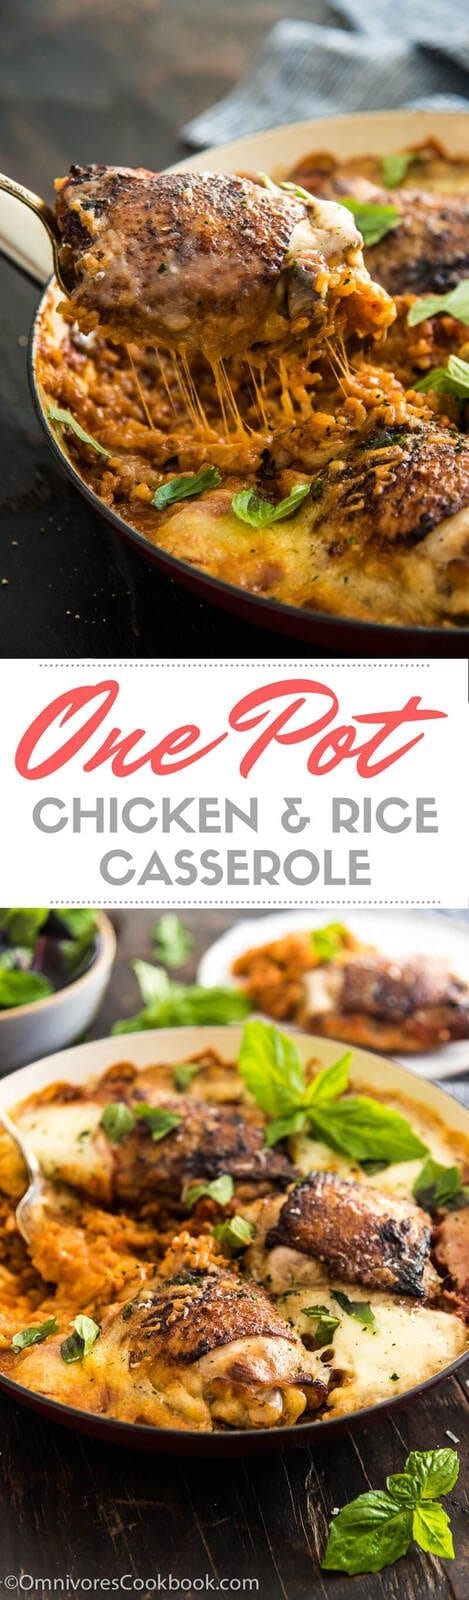 Chicken and Rice Casserole is the ultimate comfort food that both kids and adults love. Learn how to make a healthier and faster version in one pot!